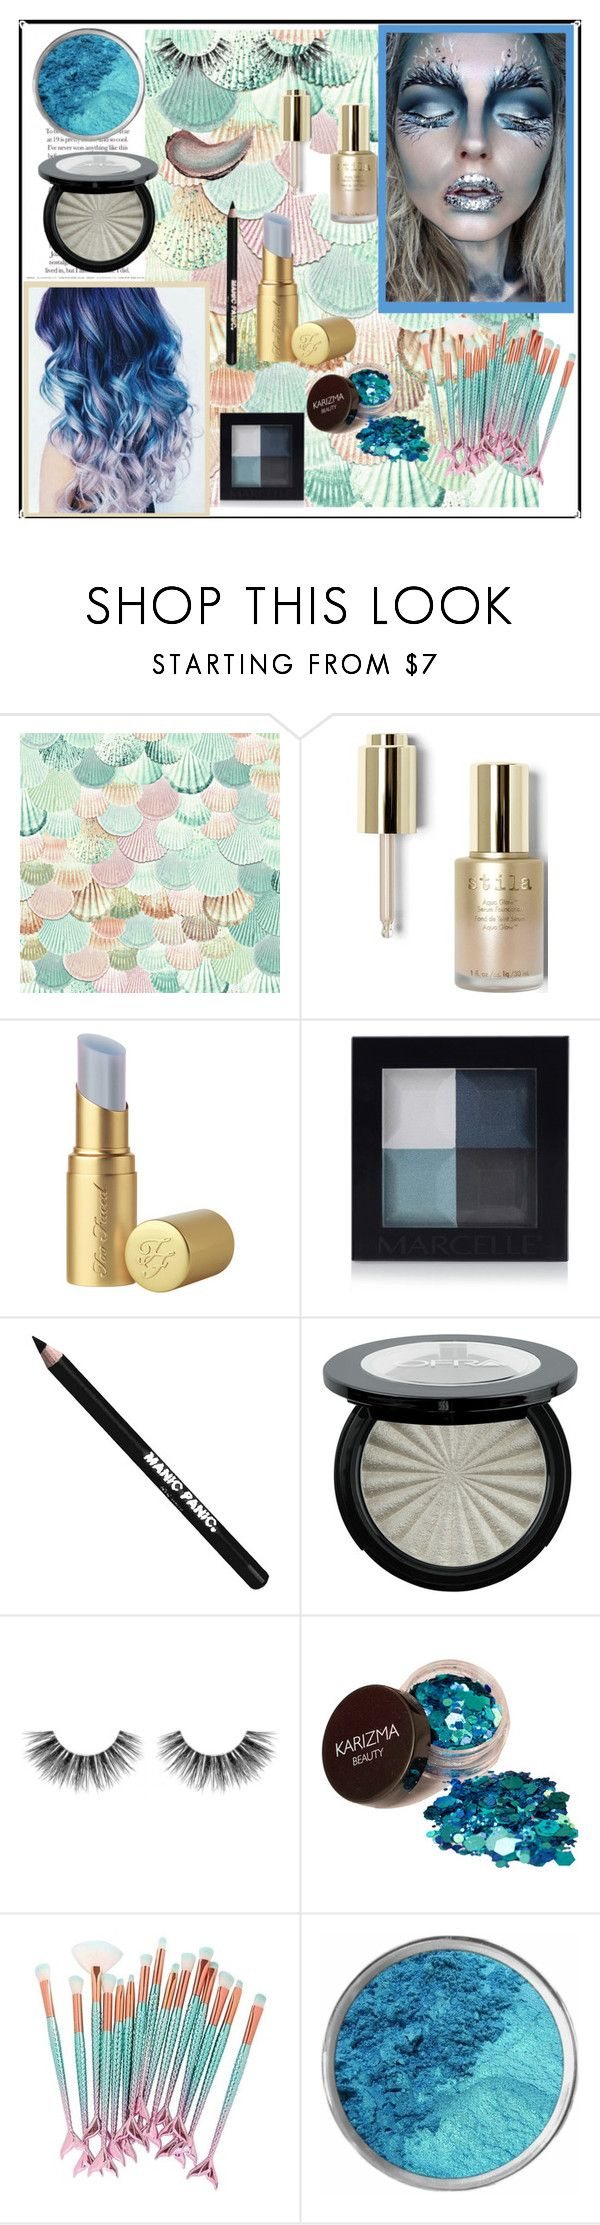 """""""Siren Makeup"""" by youngsbones ❤ liked on Polyvore featuring beauty, Stila, Too Faced Cosmetics, Manic Panic NYC, Velour Lashes and Butter London"""